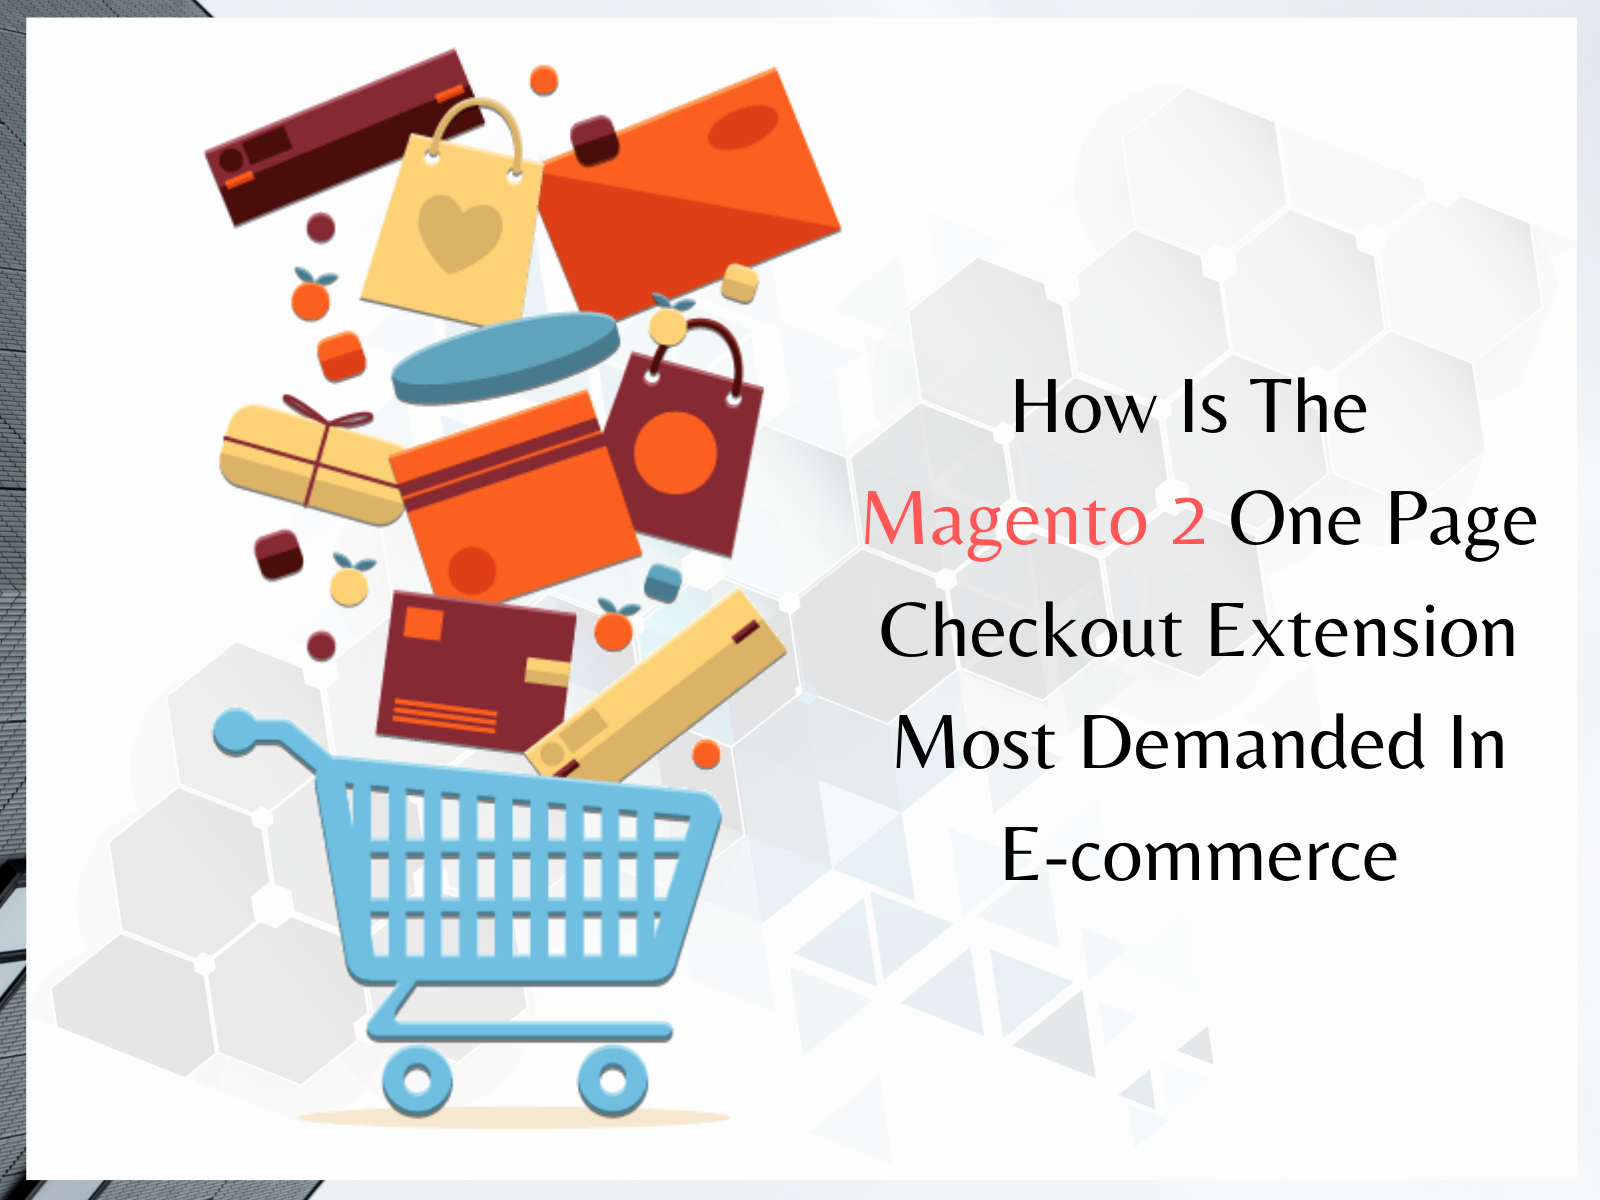 How Is The Magento 2 One Page Checkout Extension Most Demanded In E-commerce?